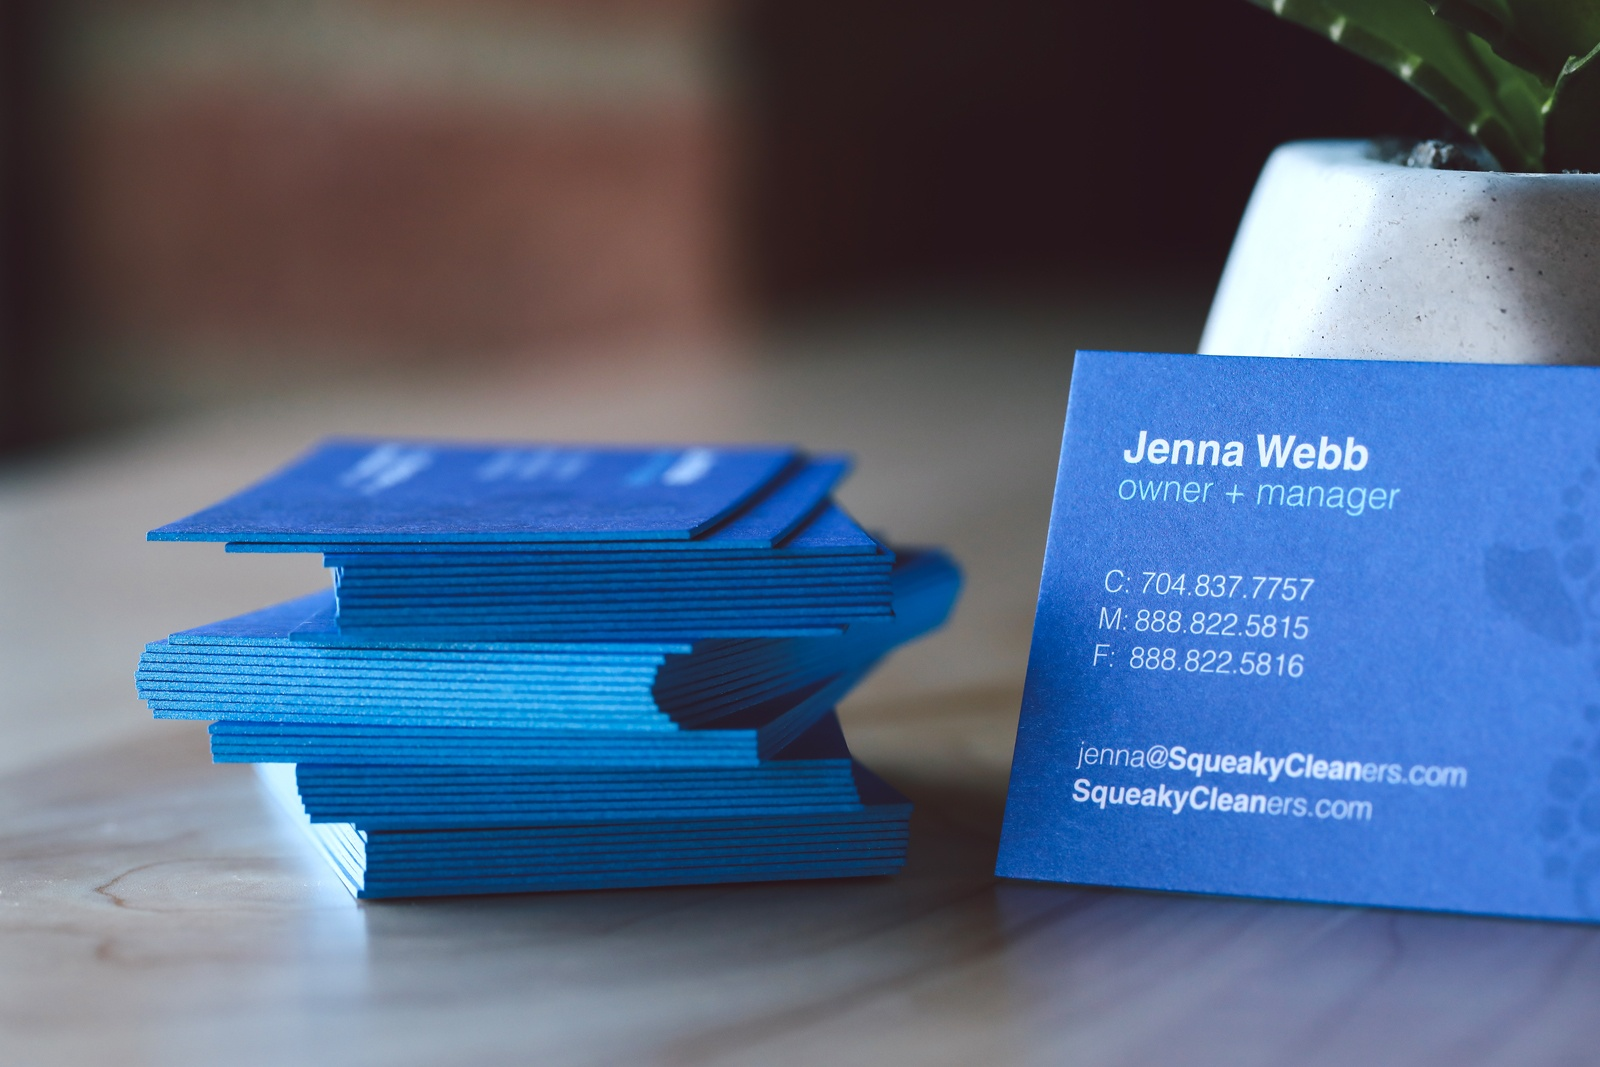 c5225356 Just keep in mind, a business card is a small piece of paper - but it can  do a lot for you and your business. Don't skimp on the design and quality  ...